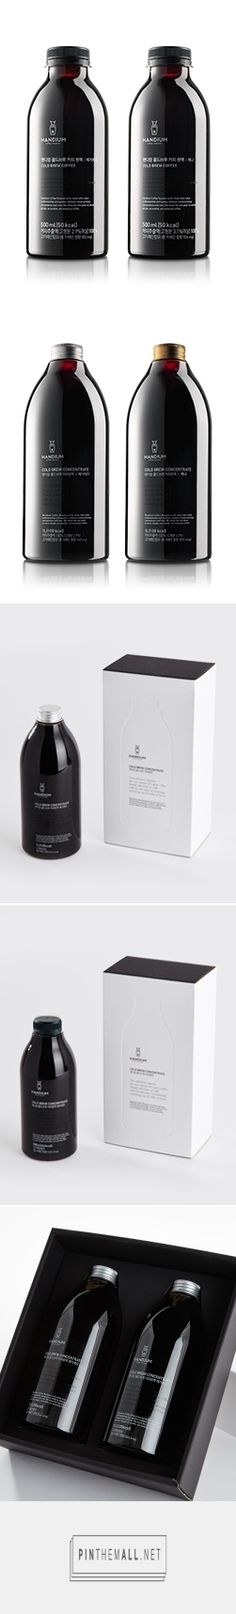 Aesthete Label love - Cold brew coffee products are all for sale on the Handium website. The packaging design is so simple and lovely PD Cool Packaging, Beverage Packaging, Coffee Packaging, Bottle Packaging, Cosmetic Packaging, Making Cold Brew Coffee, Identity, Coffee Design, Packaging Design Inspiration